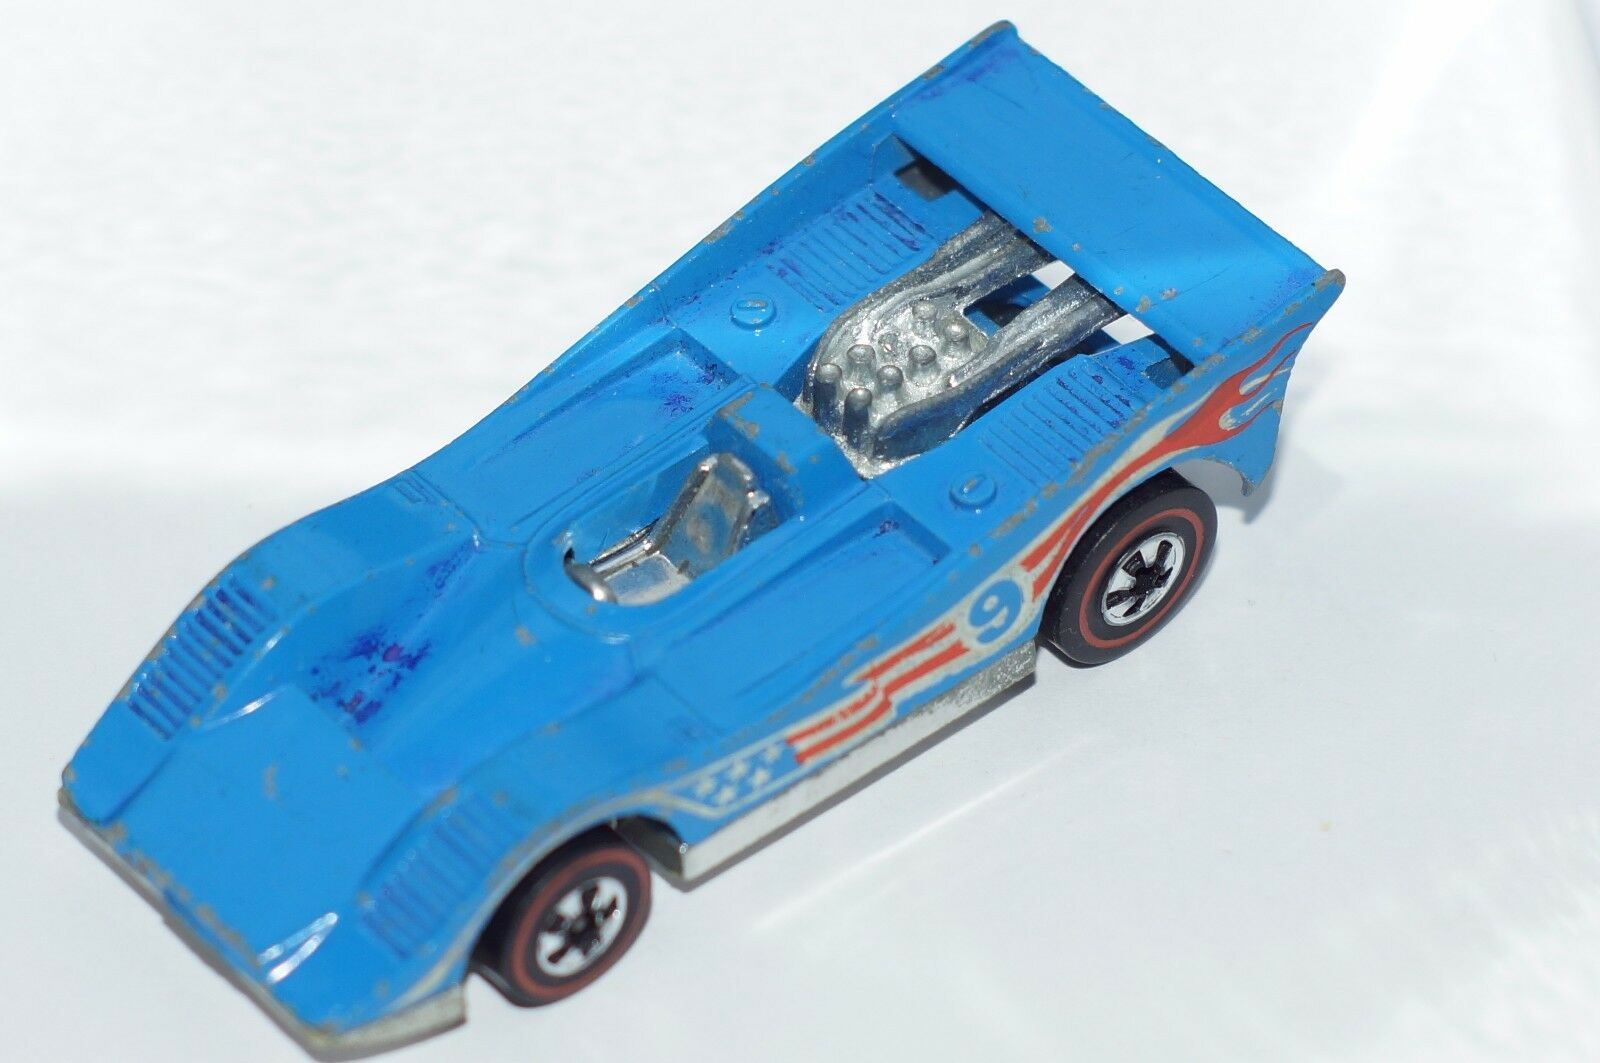 ORIGINAL Hot Wheels rossoline - American Victory Race Car - Chrome Base - blu 9